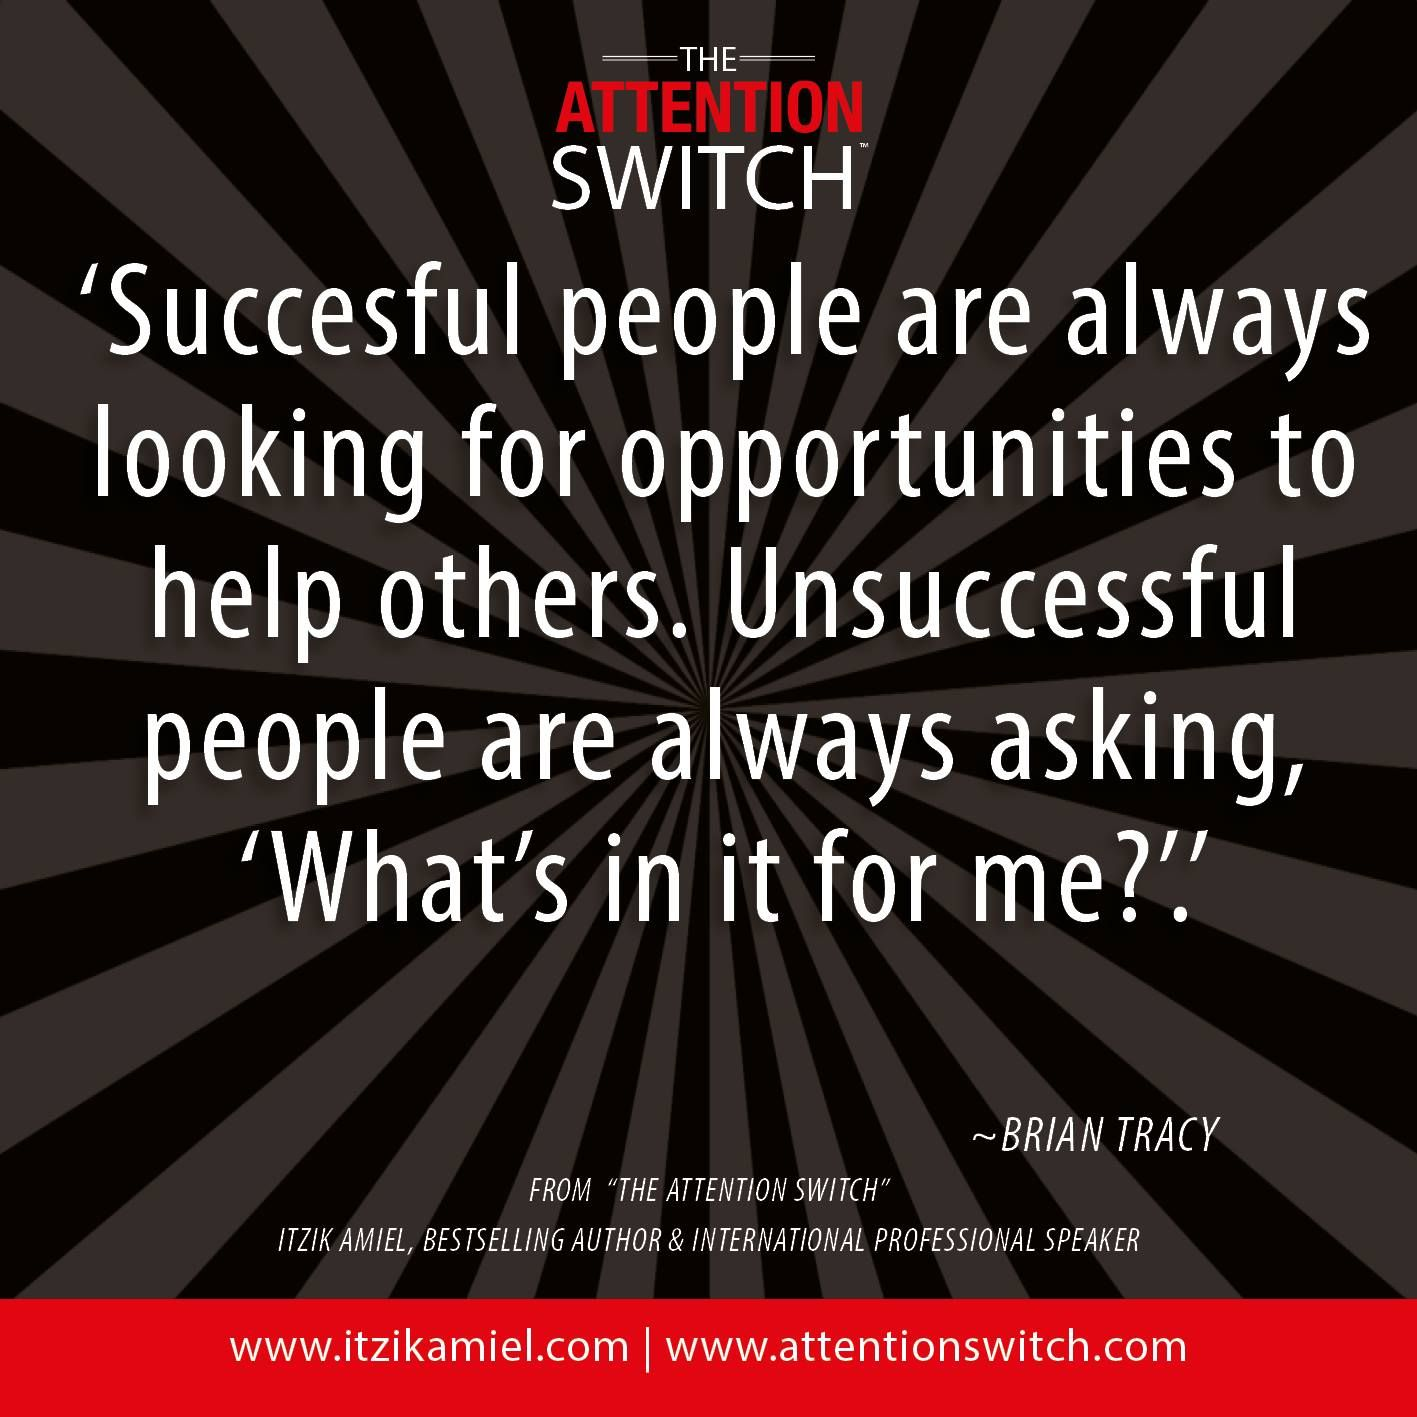 Success And Unsuccess Quotes: 'Successful People Are Always Look For Opportunities To